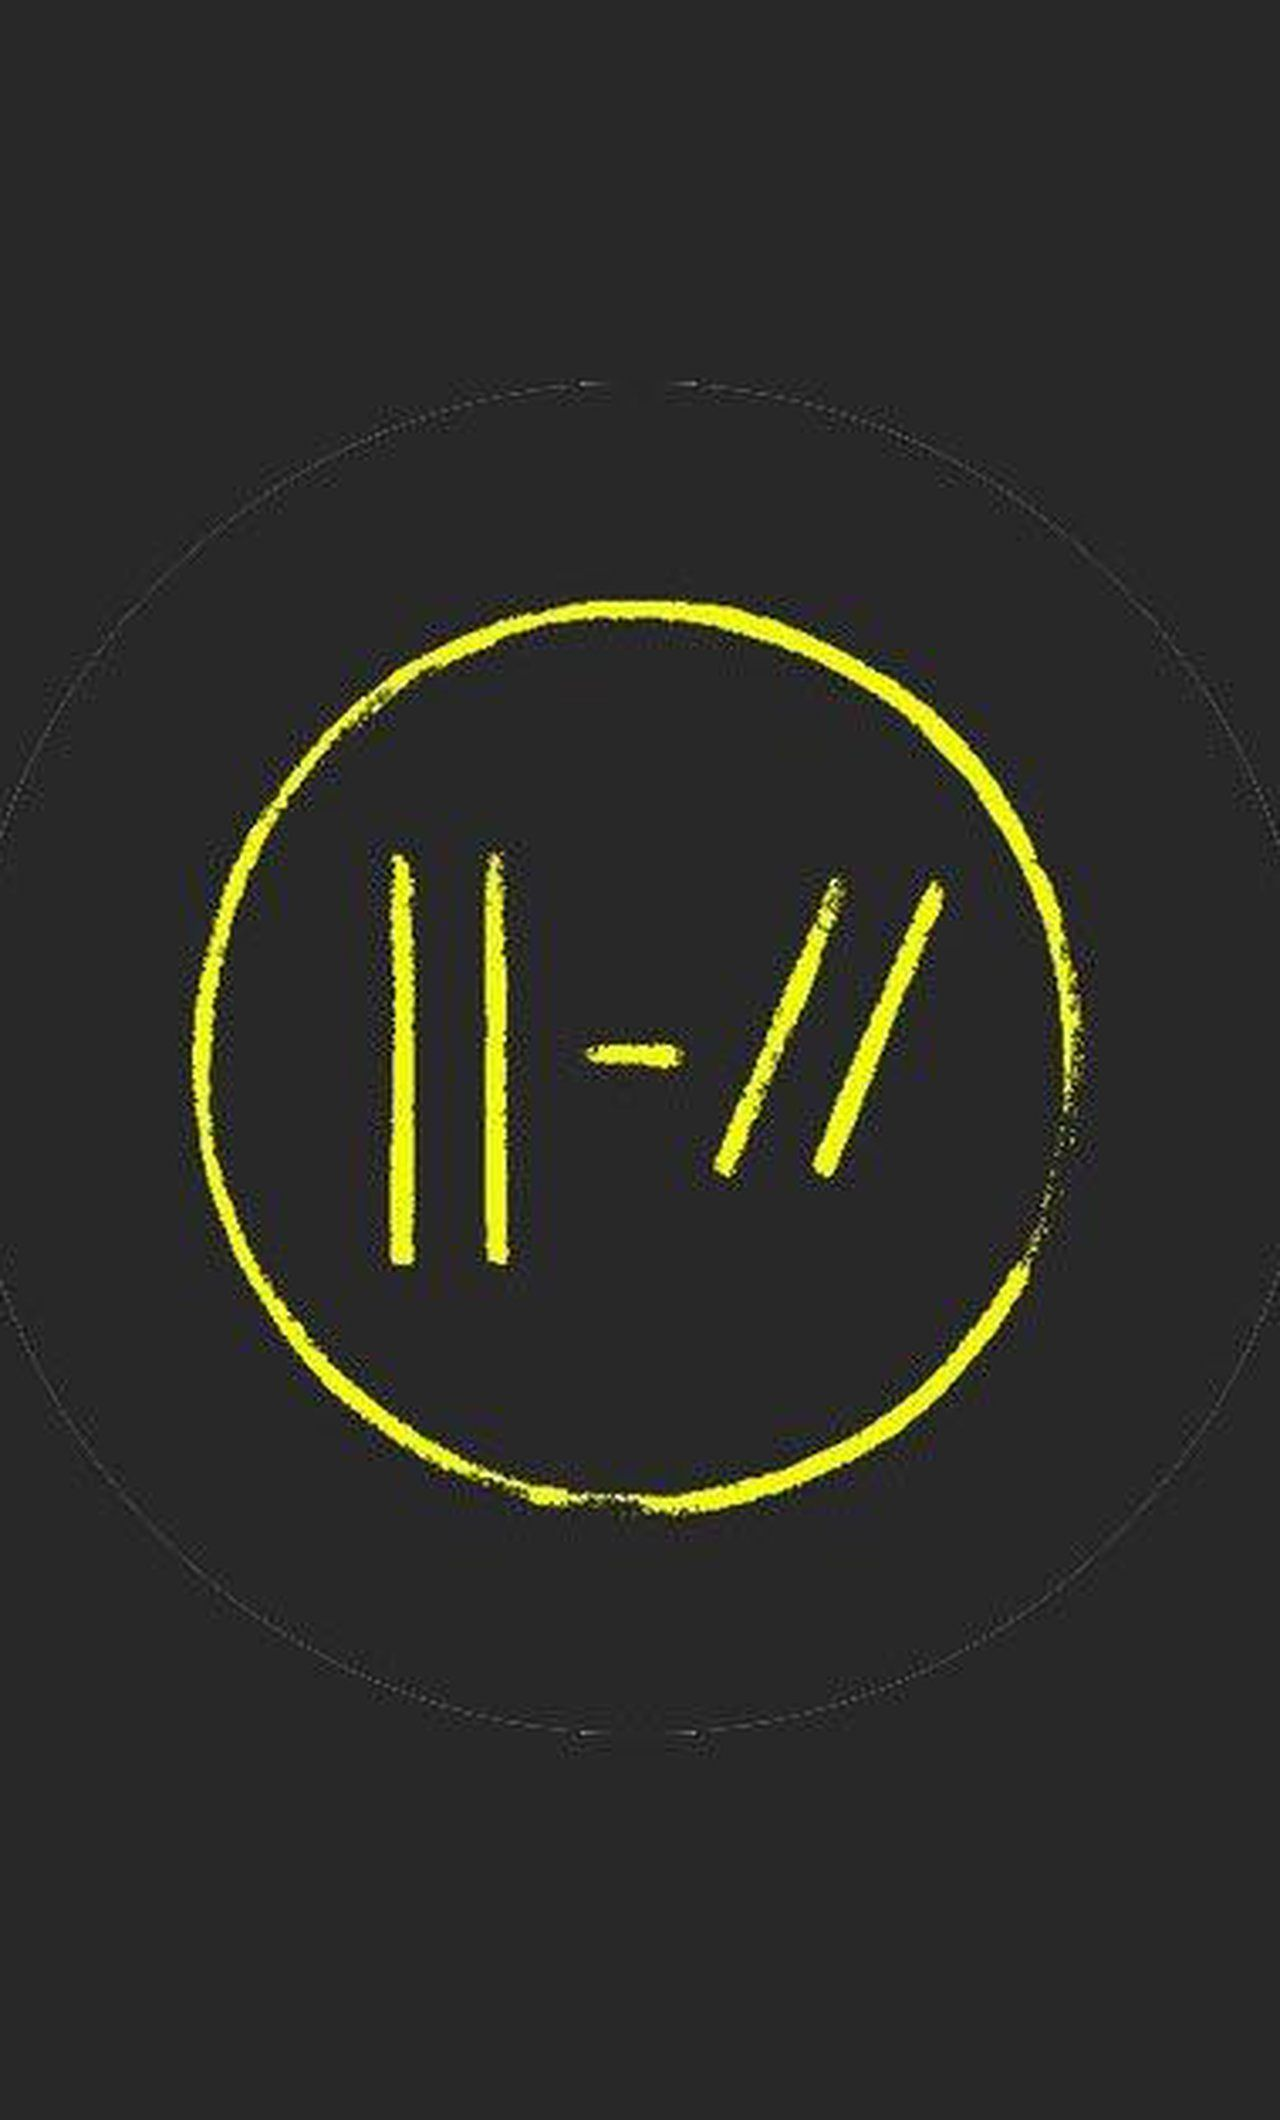 Twenty One Pilots Logo Iphone Wallpapers Top Free Twenty